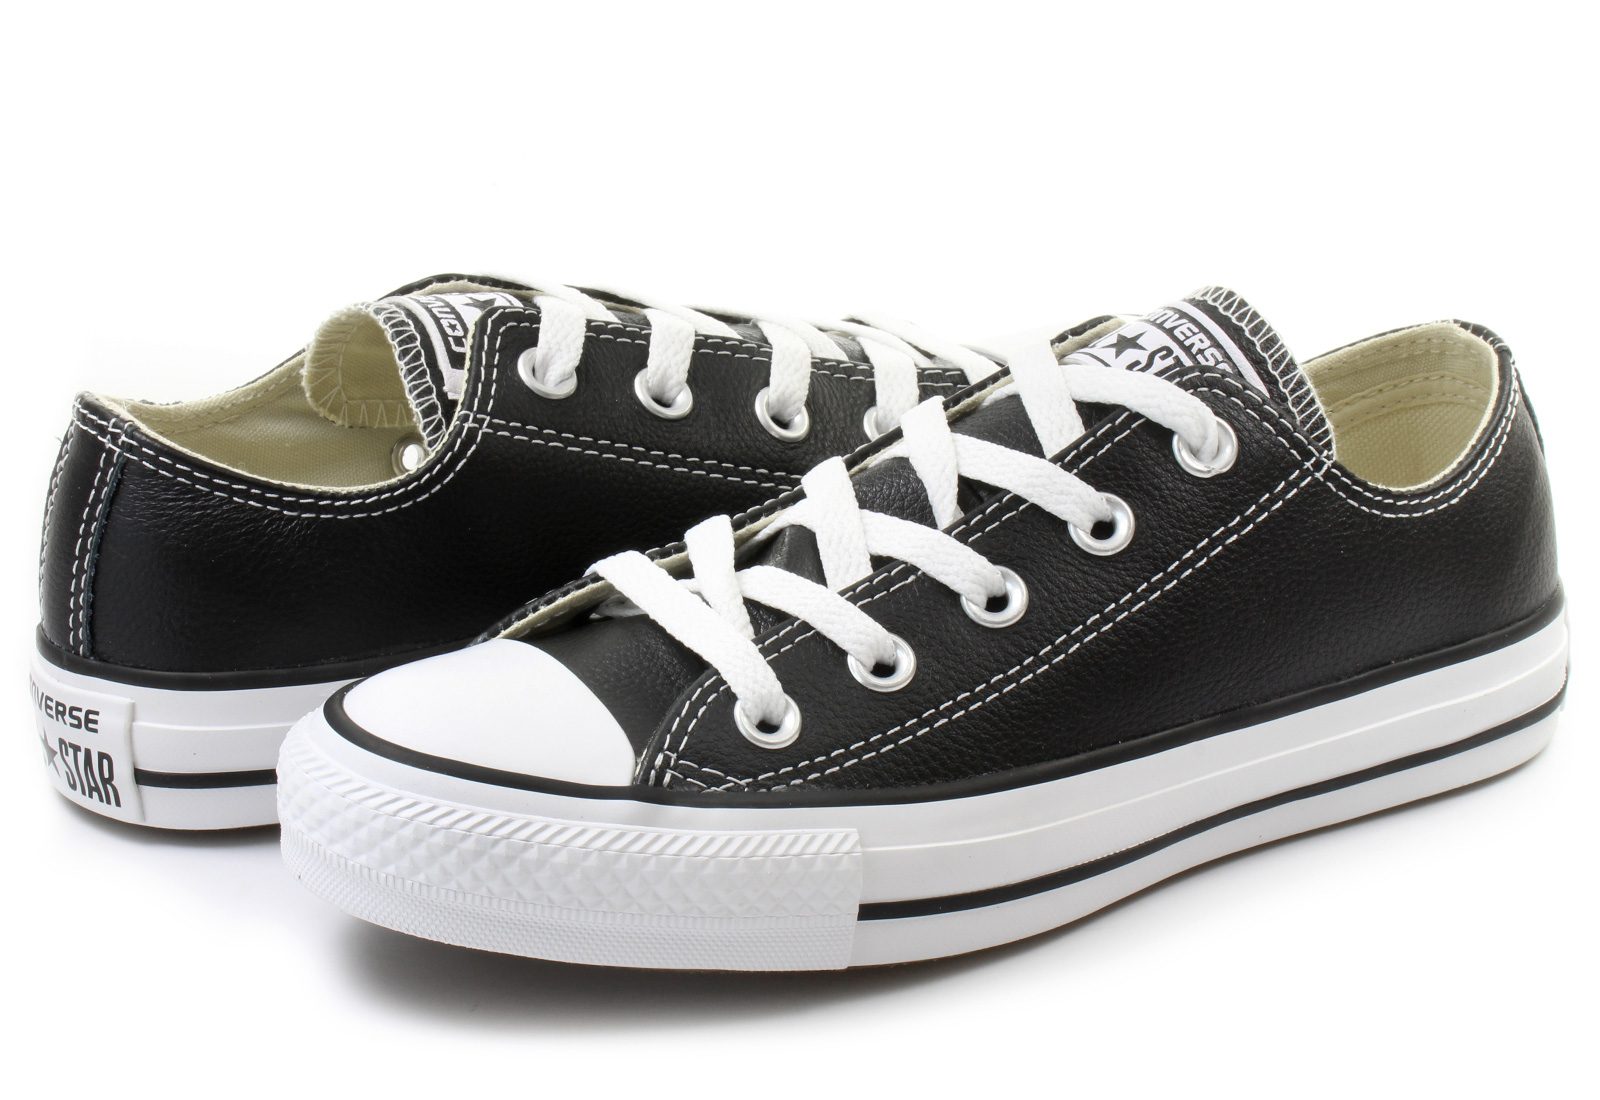 5d6789e79023 Converse Tornacipő - Ct As Core Leather Ox - 132174C - Office Shoes ...